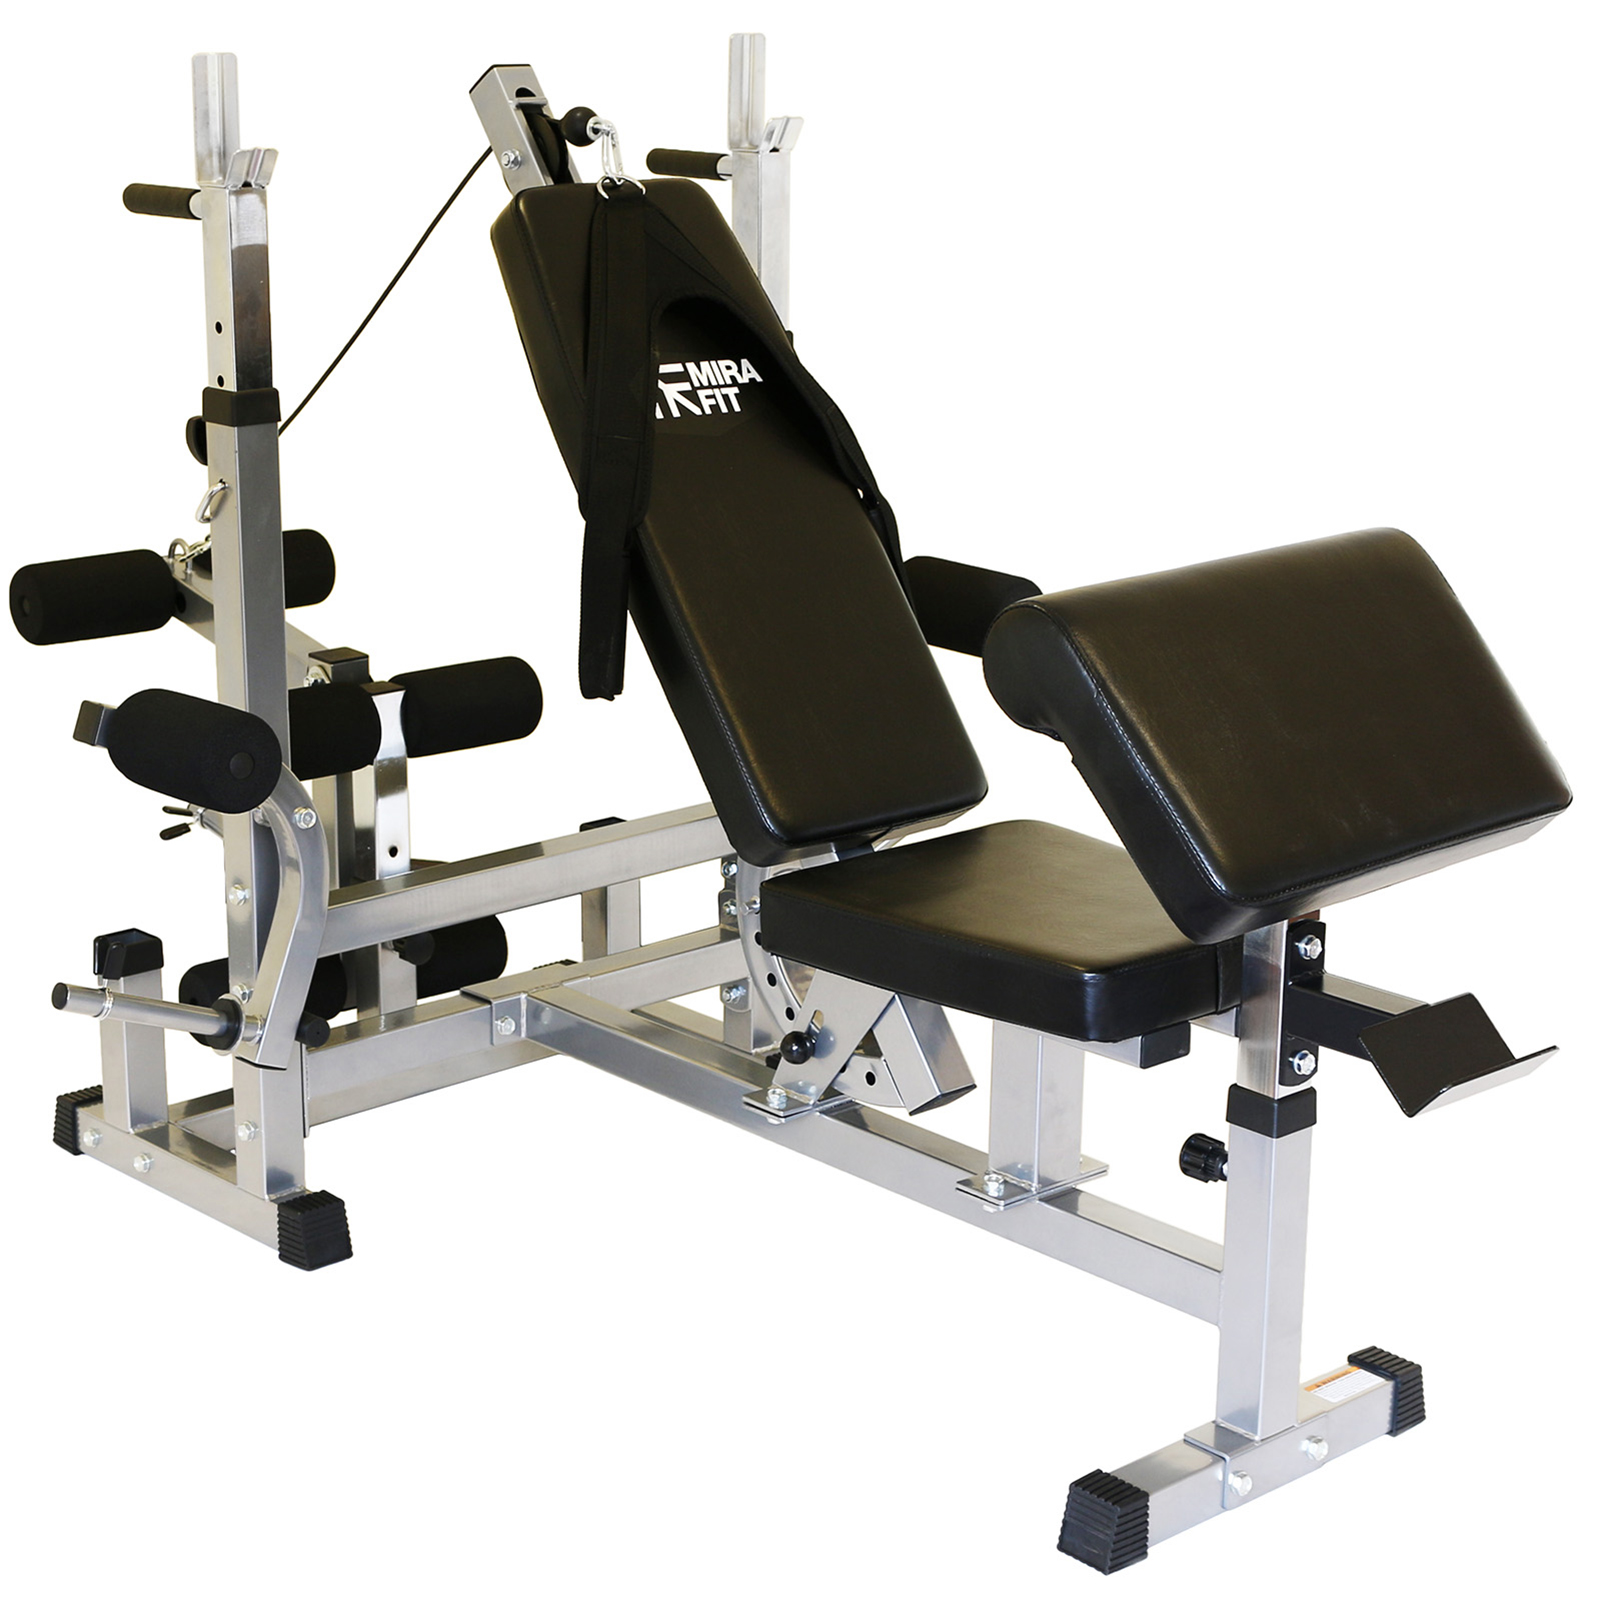 Home Gym Bench Set: MIRAFIT HD Adjustable Weight Bench Home Multi Gym With Dip